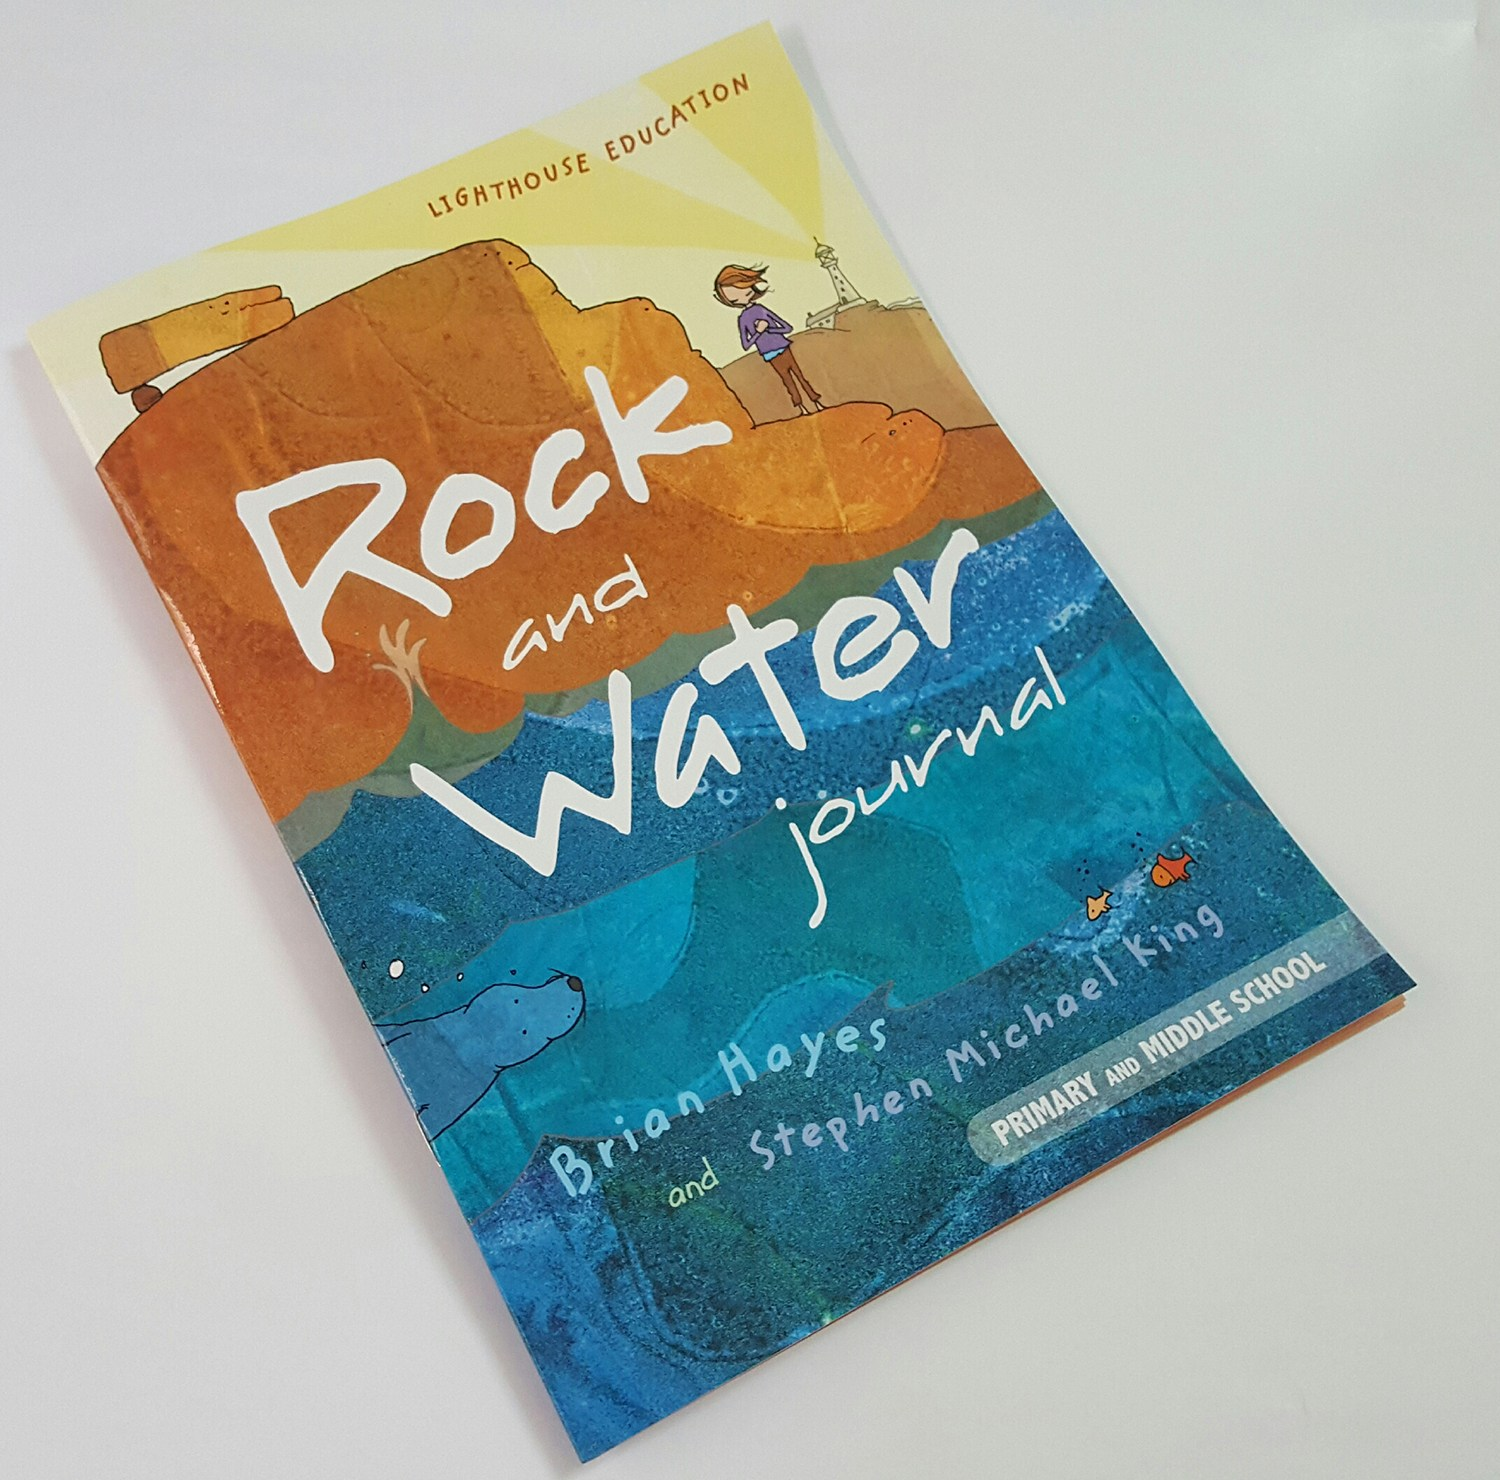 The cover of the Rock and Water journal for students to write their reflections in